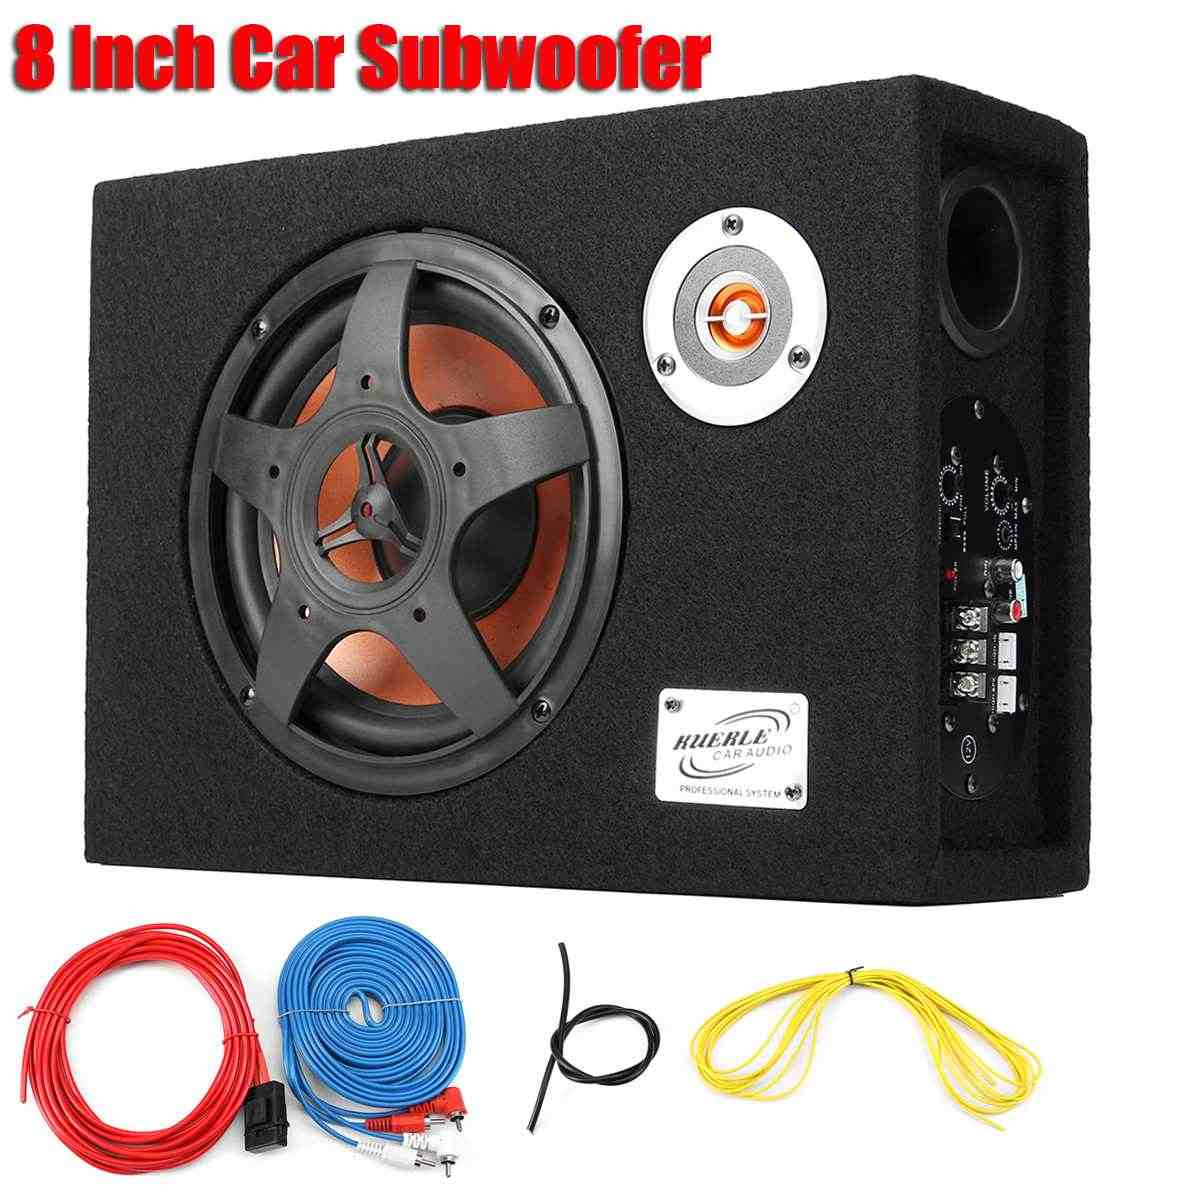 8 Inch 480w Car Subwoofer 12V Slim Under-Seat Speaker Car Audio Subwoofer Car High Power Amplifier Speaker Super Bass Speaker